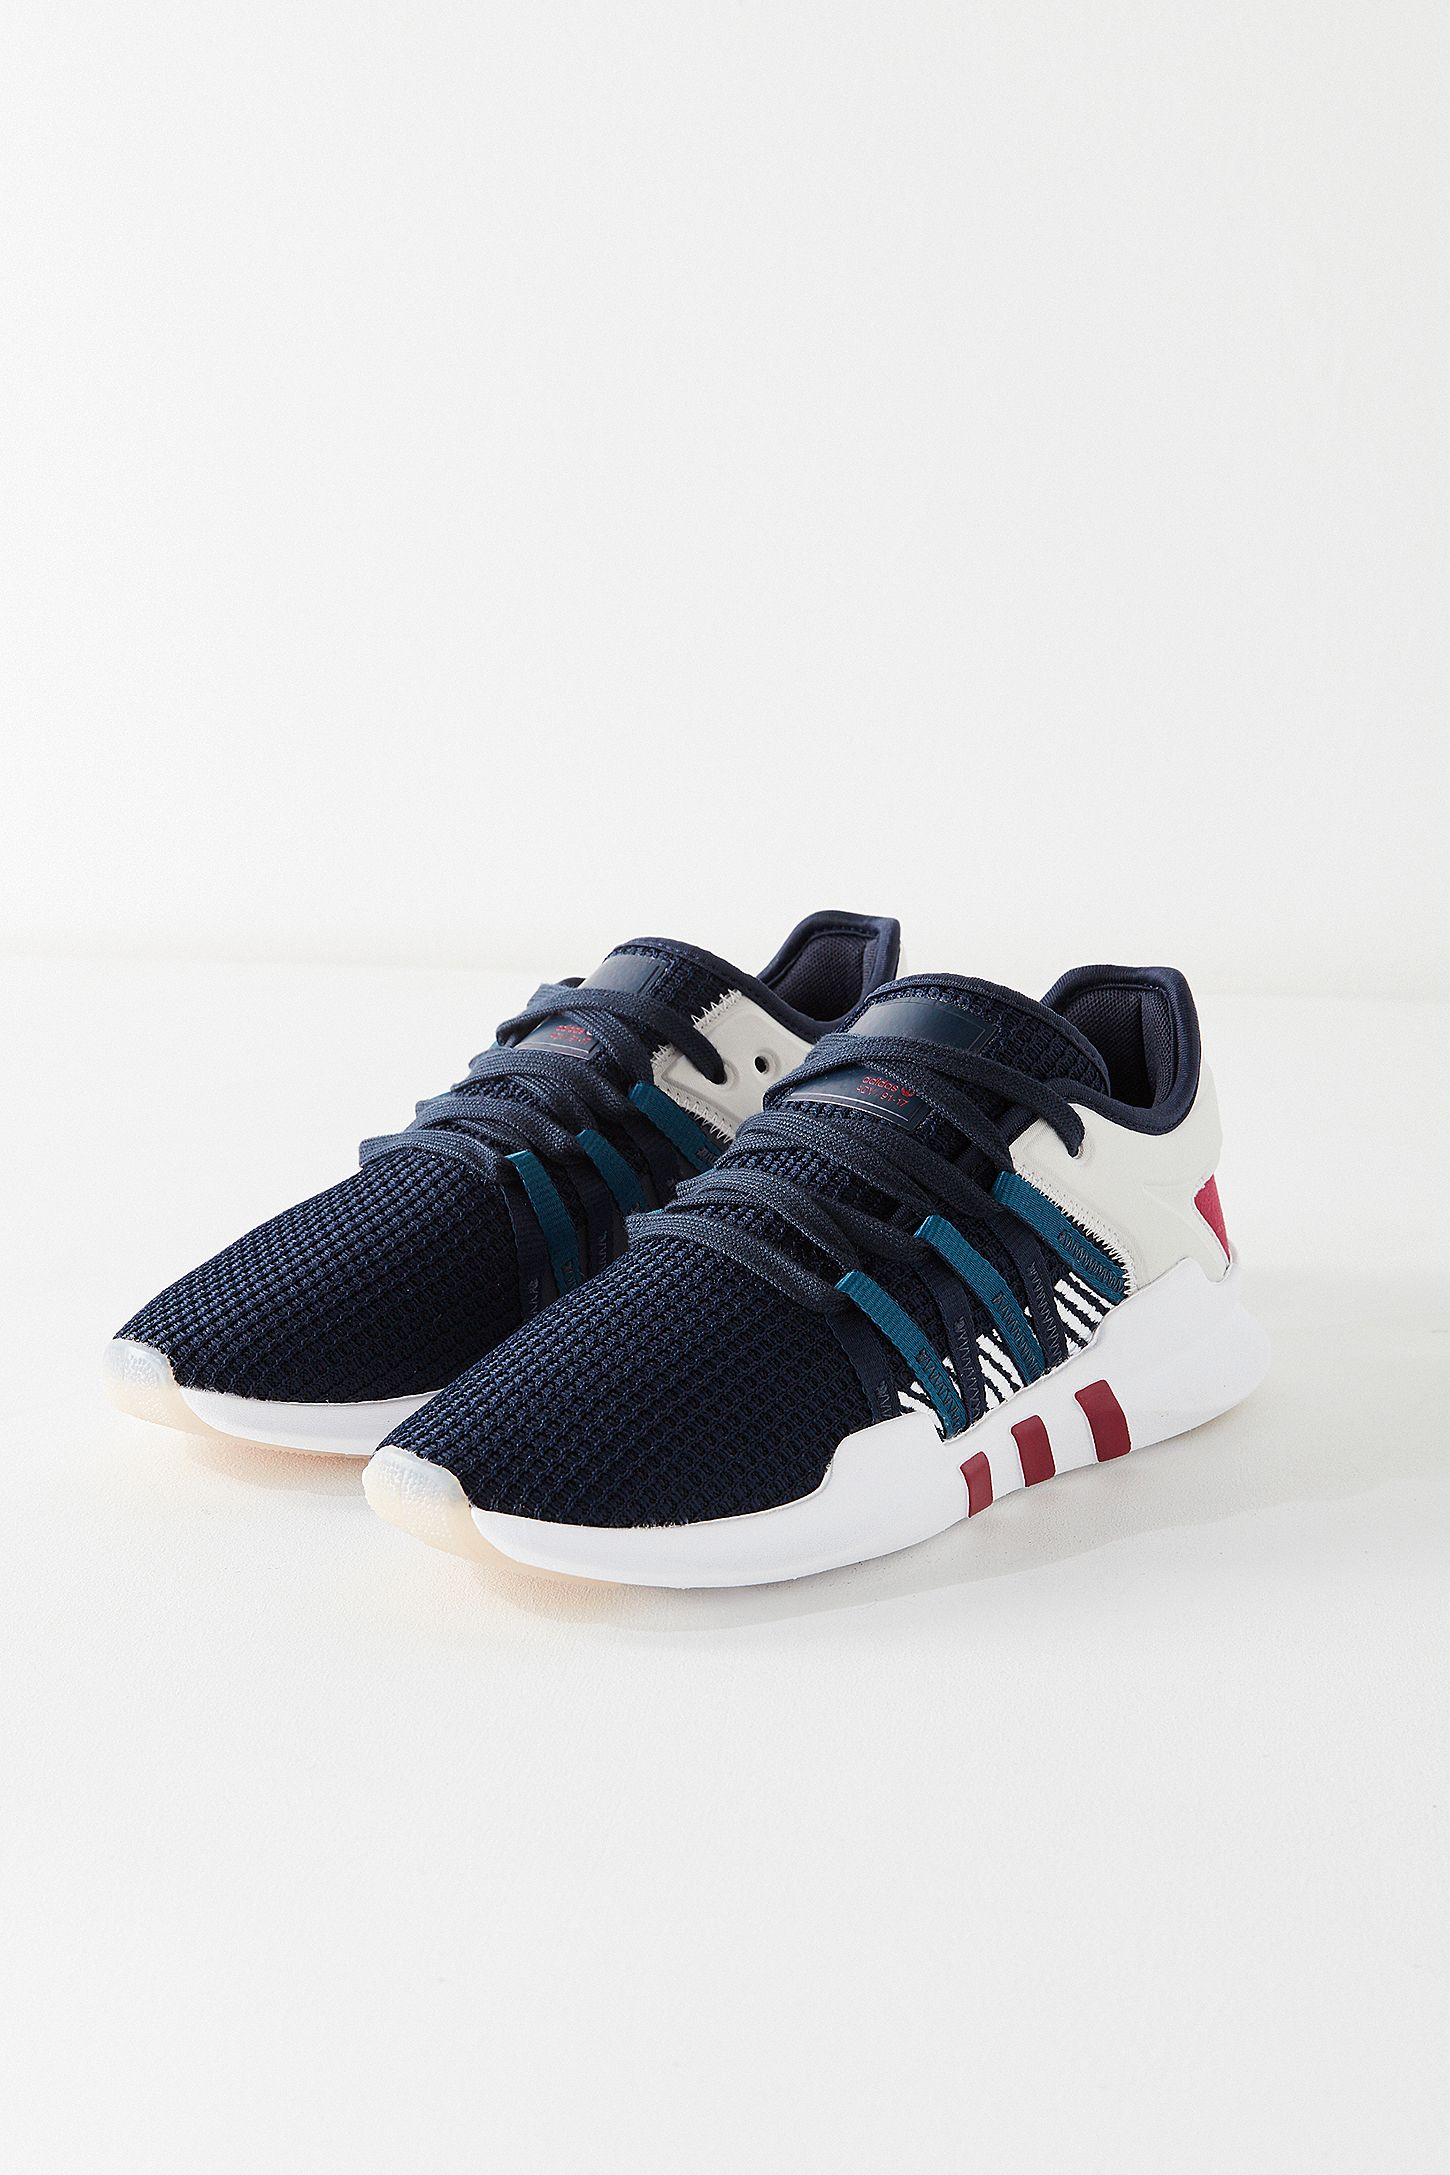 7724114d370b adidas Originals EQT Racing ADV Trainers. Click on image to zoom. Hover to  zoom. Double Tap to Zoom